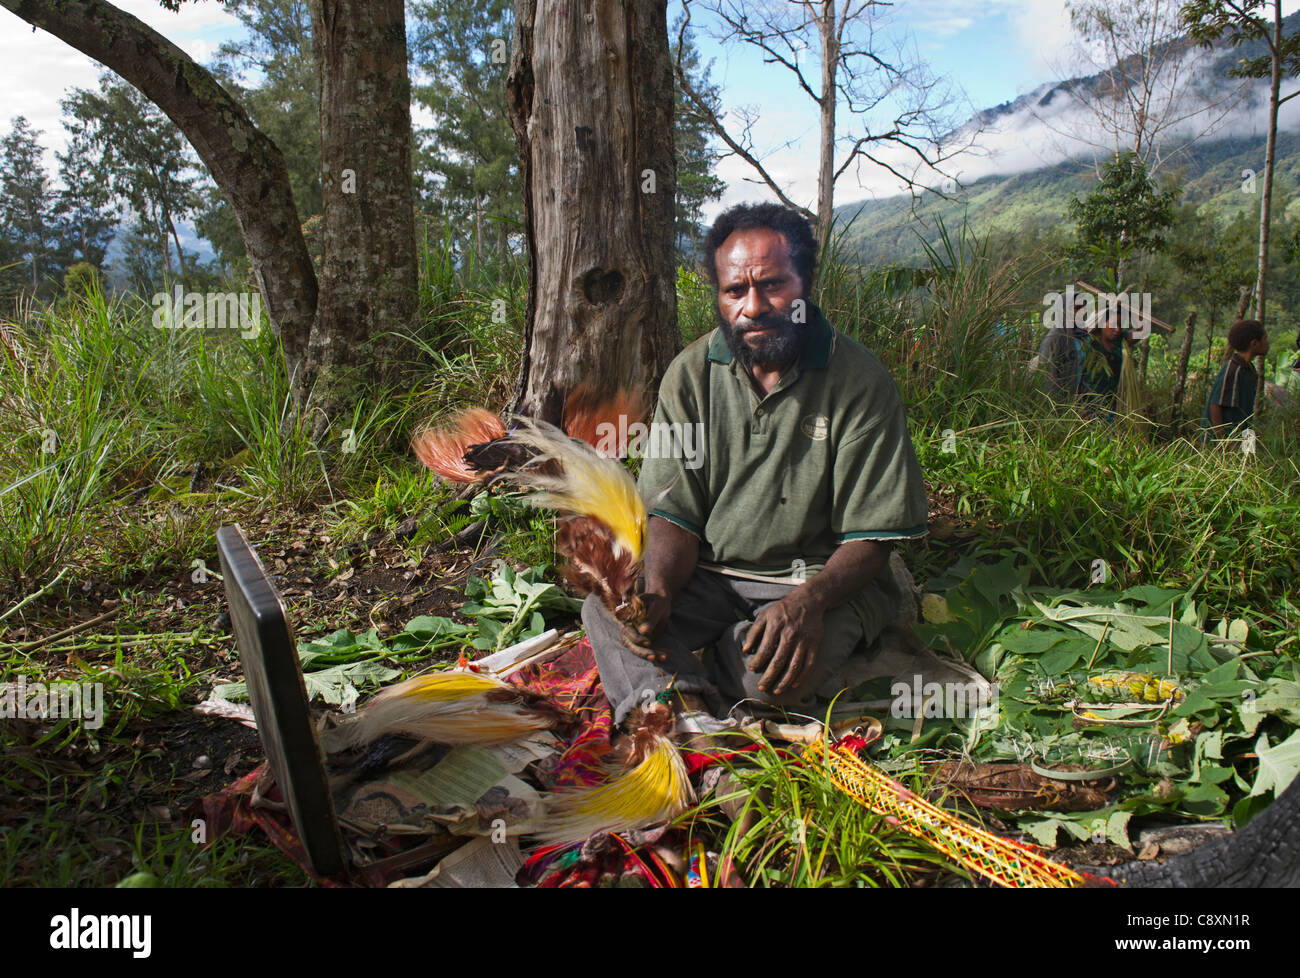 Man unpacking bird of paradise plumes to build head dress at a Sing-sing Western Highlands Papua New Guinea - Stock Image